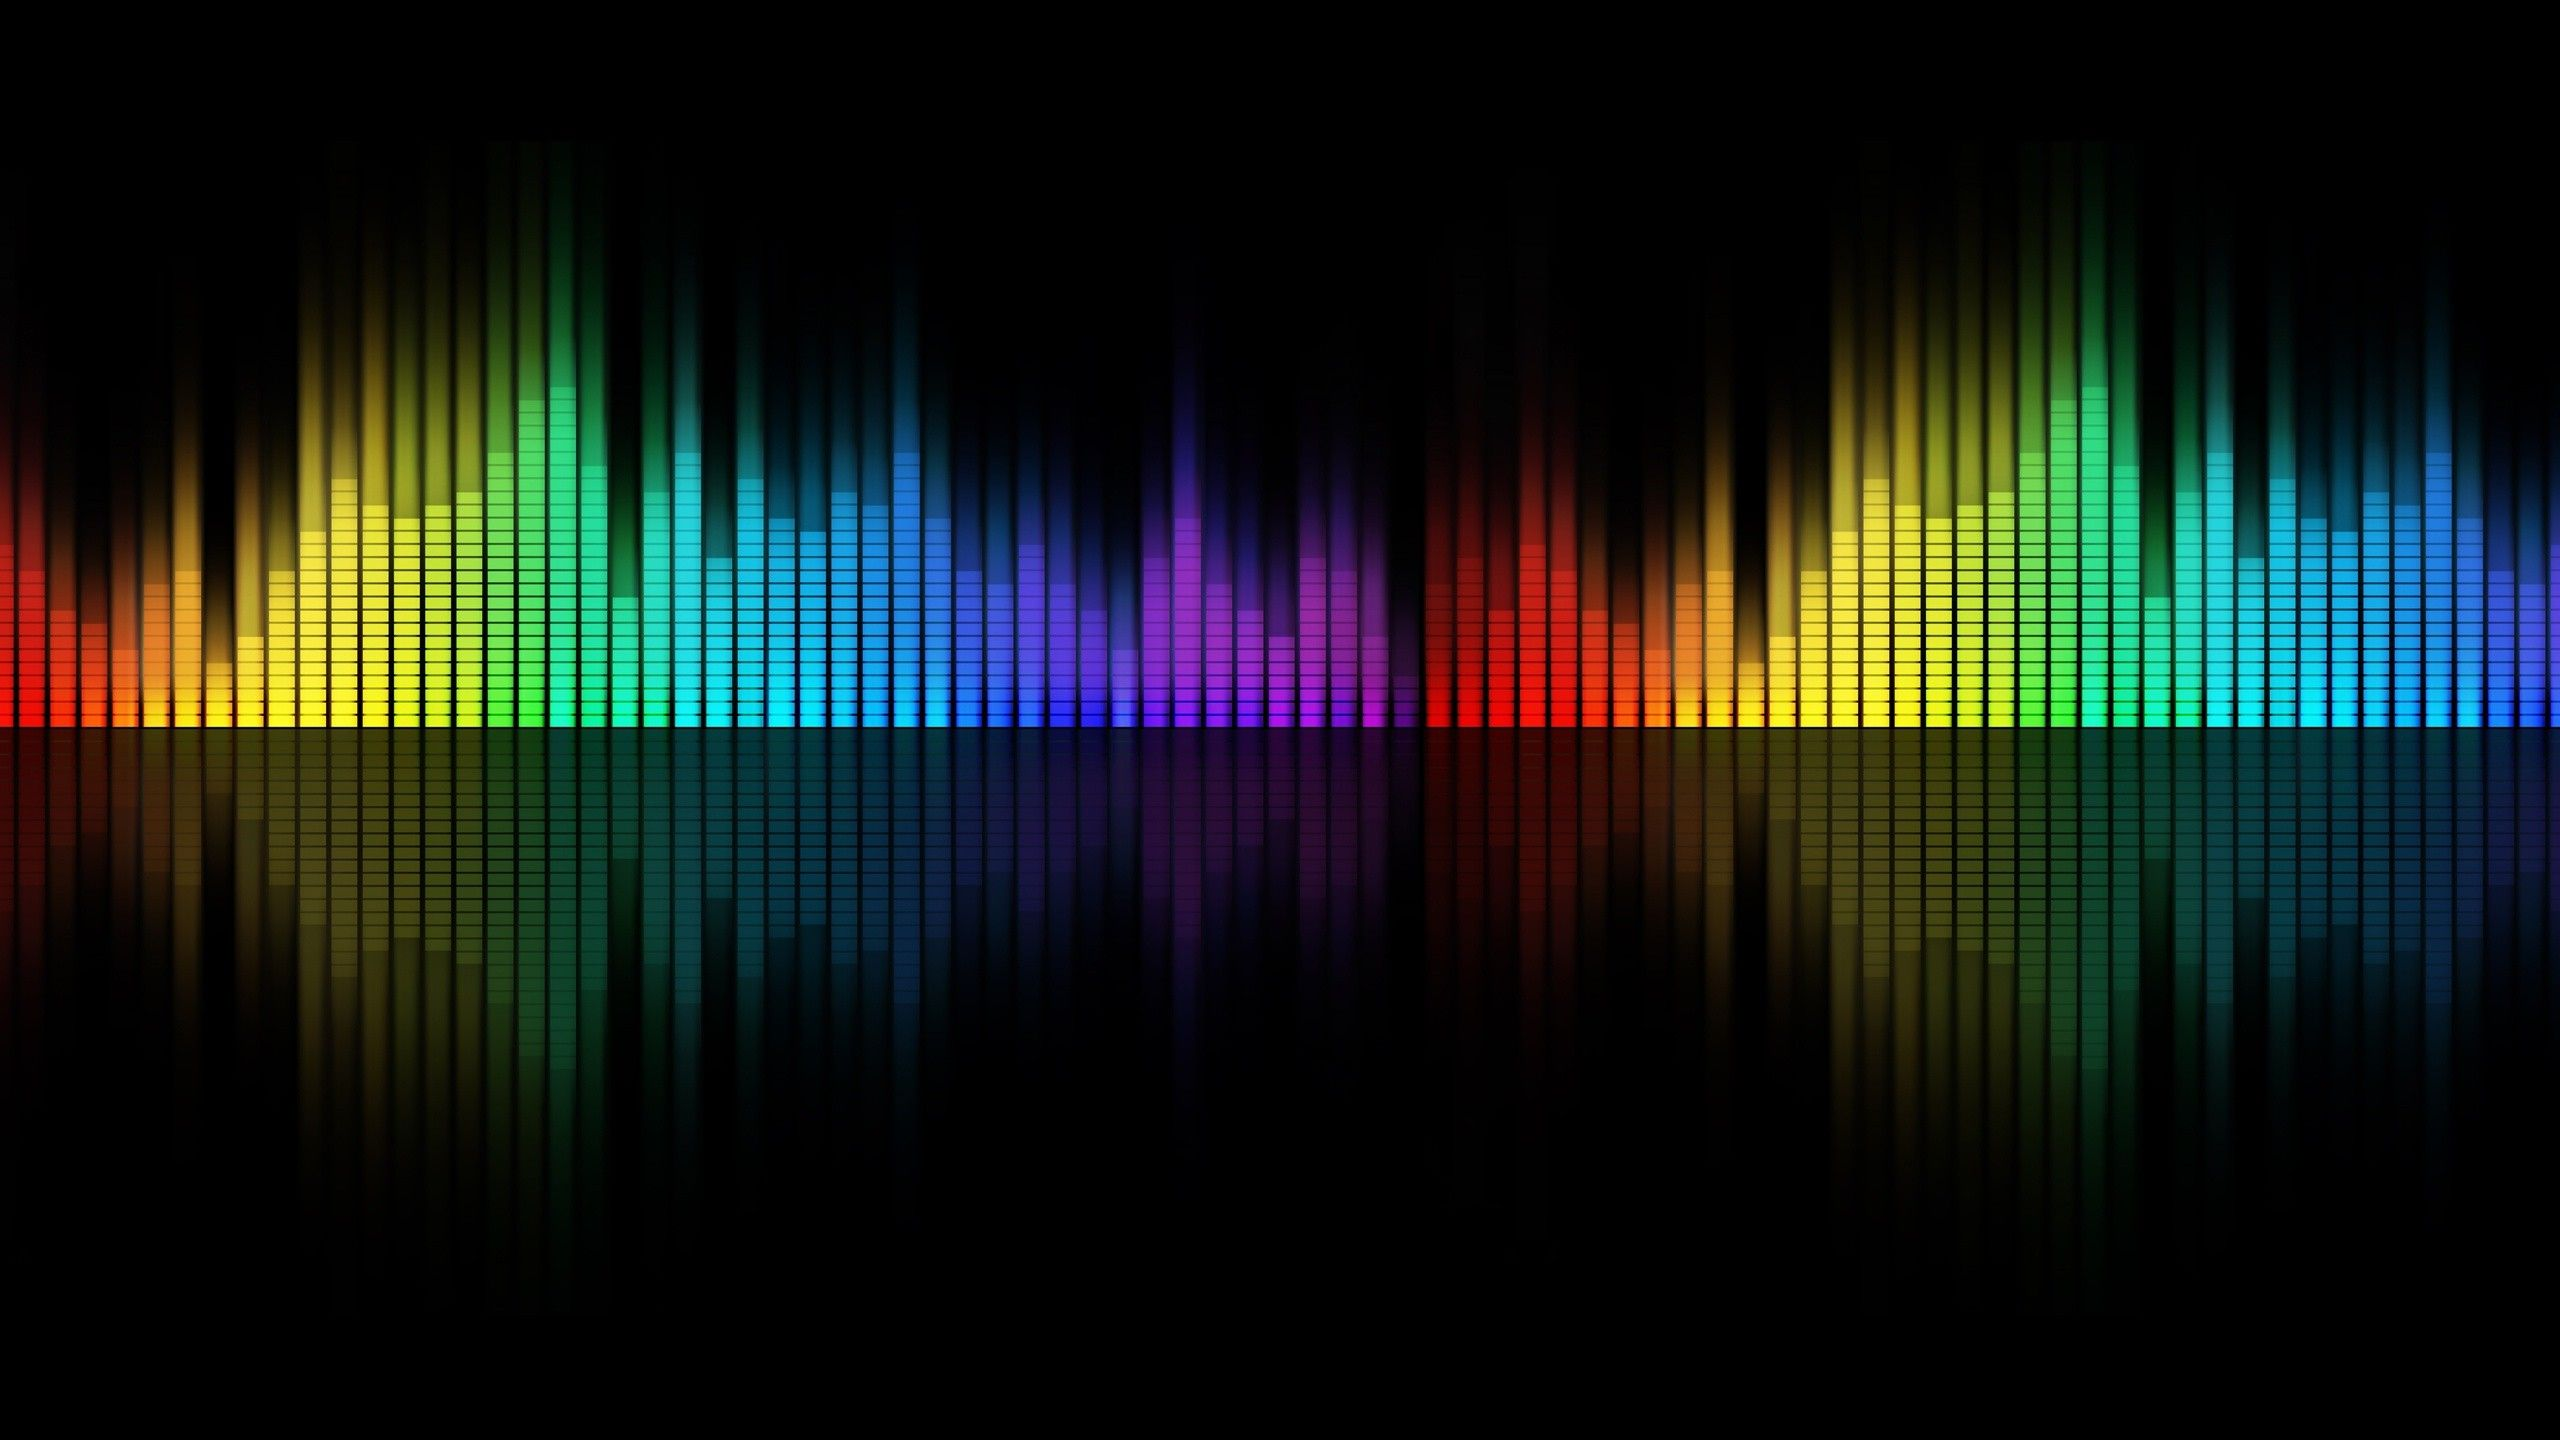 Spectrum wallpapers top free spectrum backgrounds - Wallpaper 1920x1080 music ...